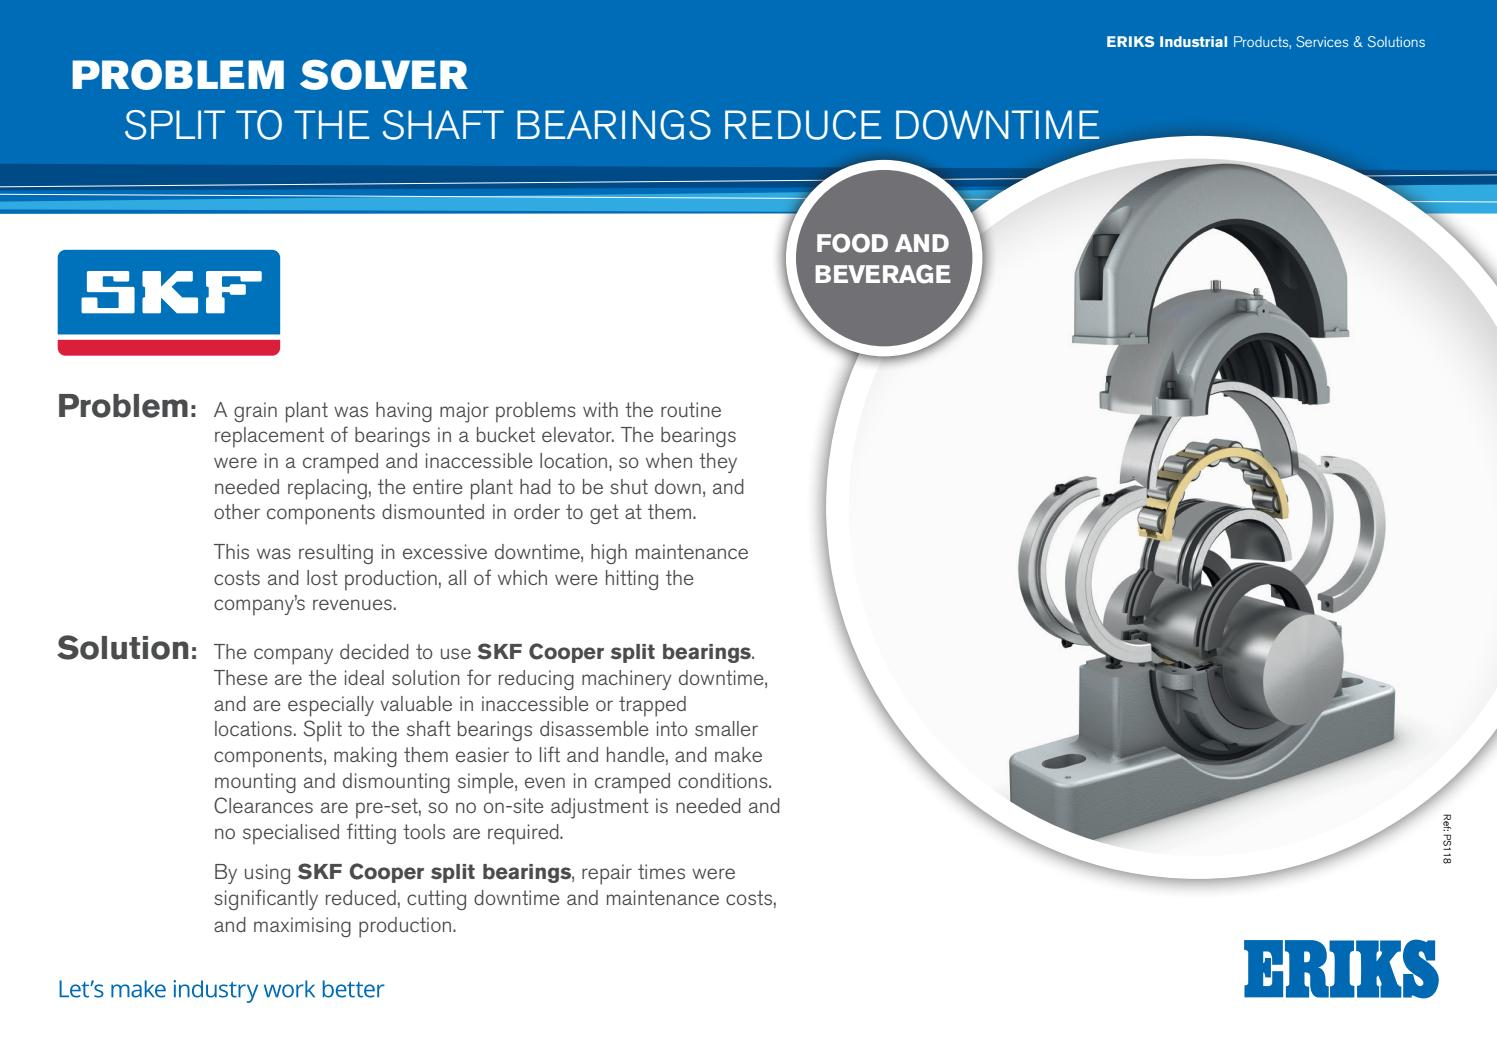 ERIKS Problem Solver - SKF - Split Bearings to Reduce Downtime by